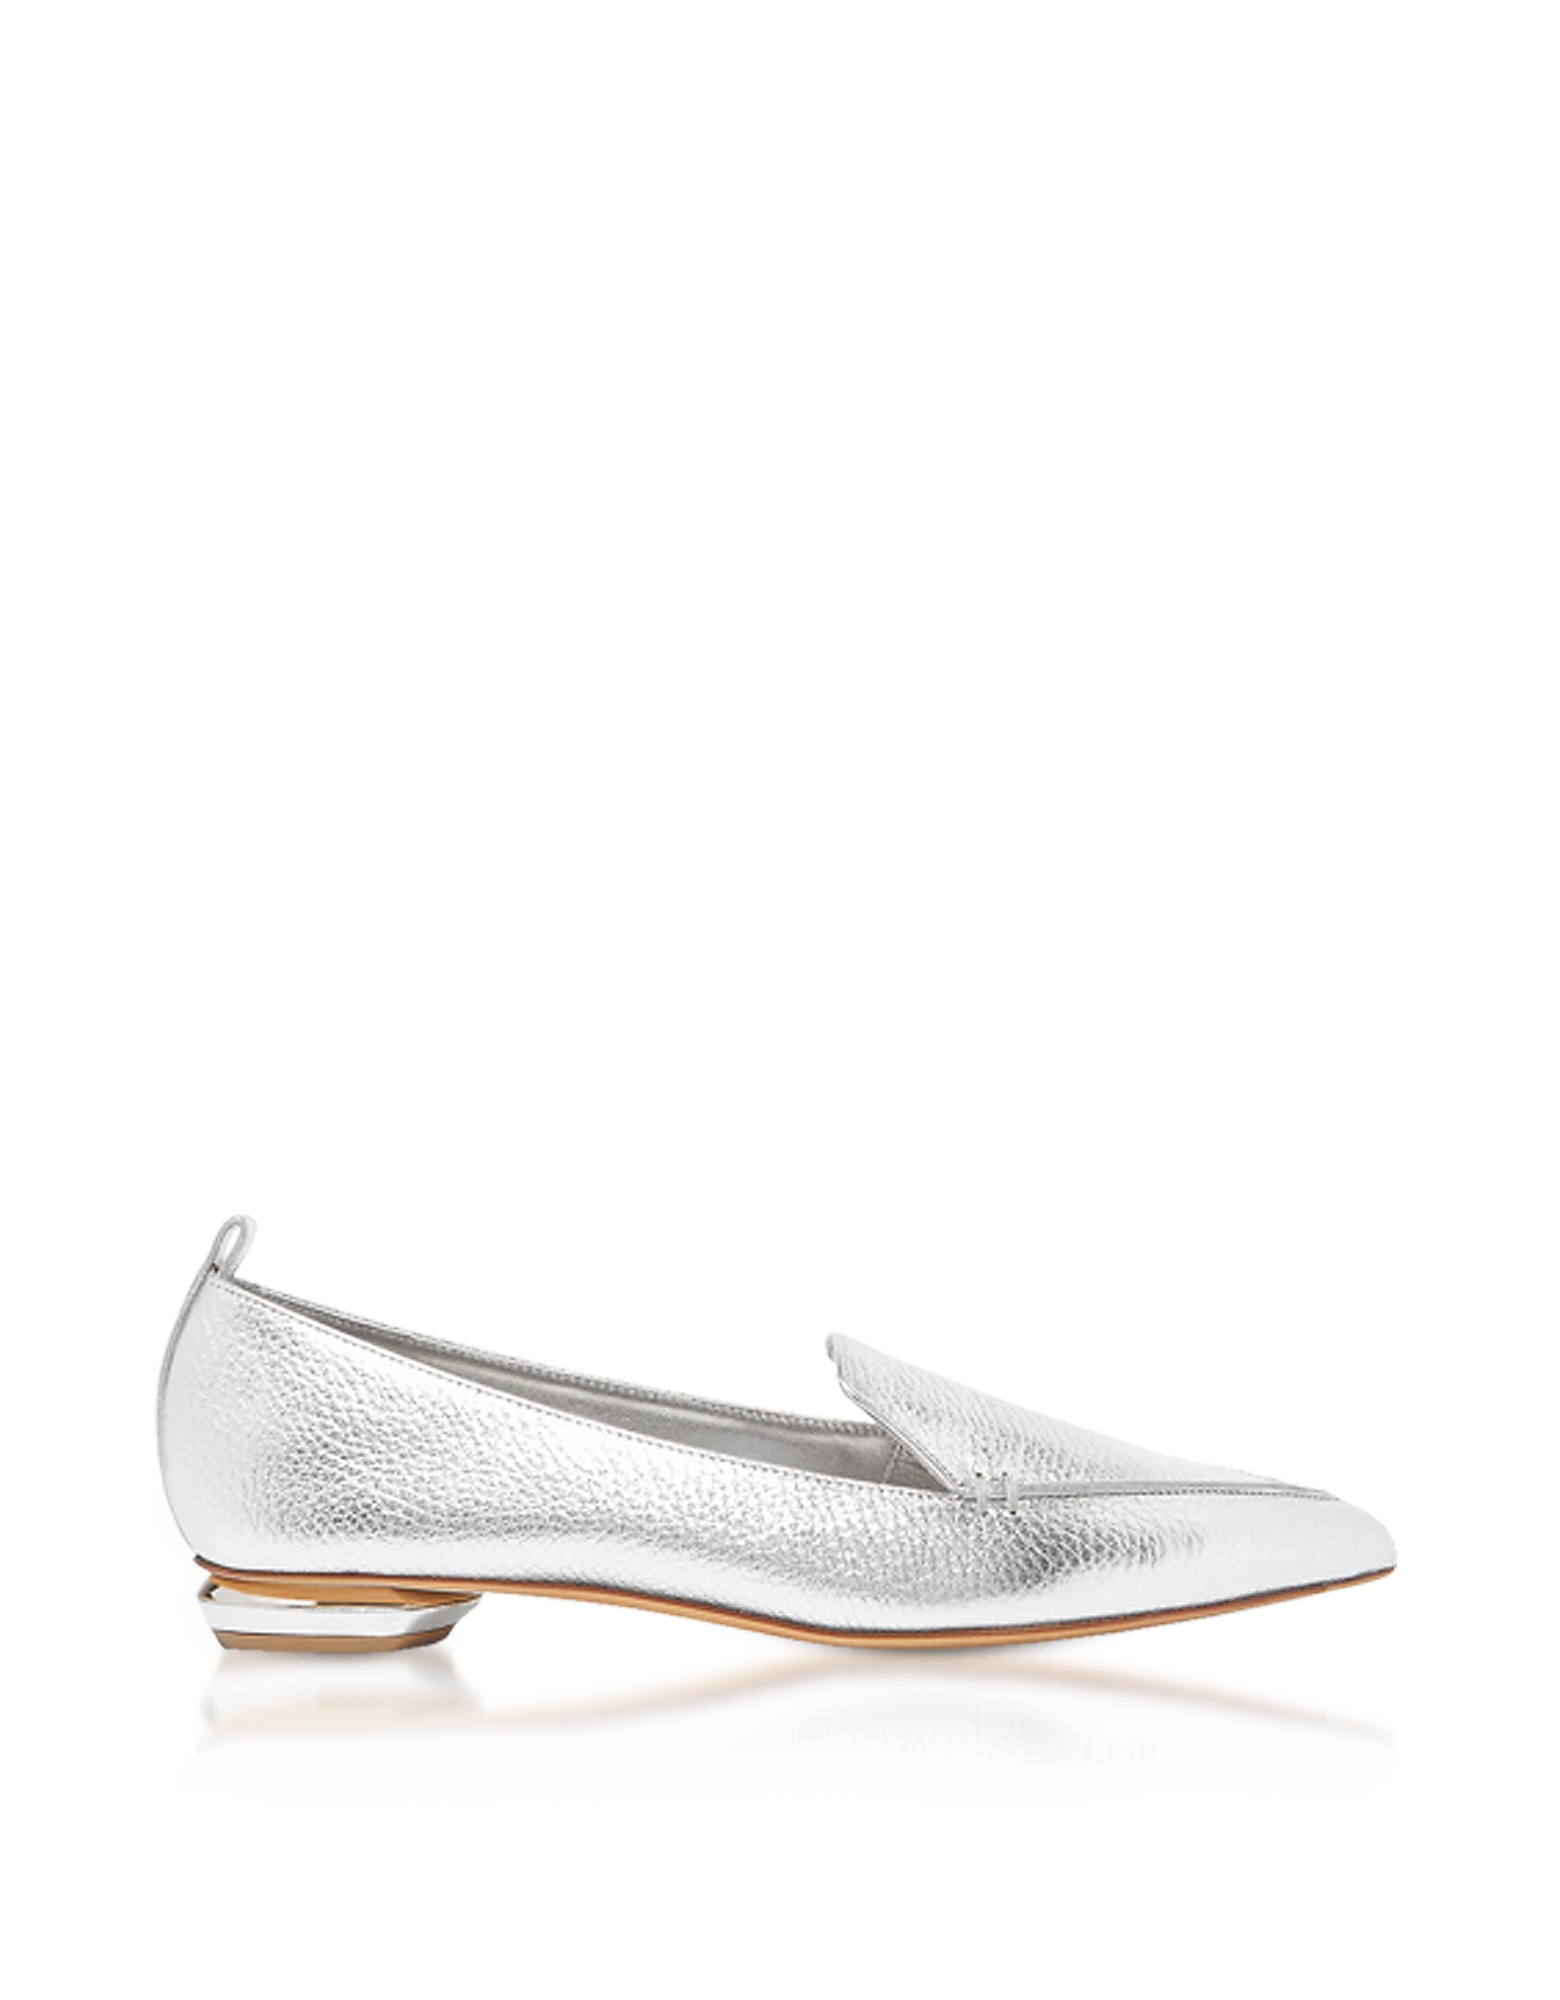 Nicholas Kirkwood Shoes, Beya Metallic Silver Tumbled Leather Loafers